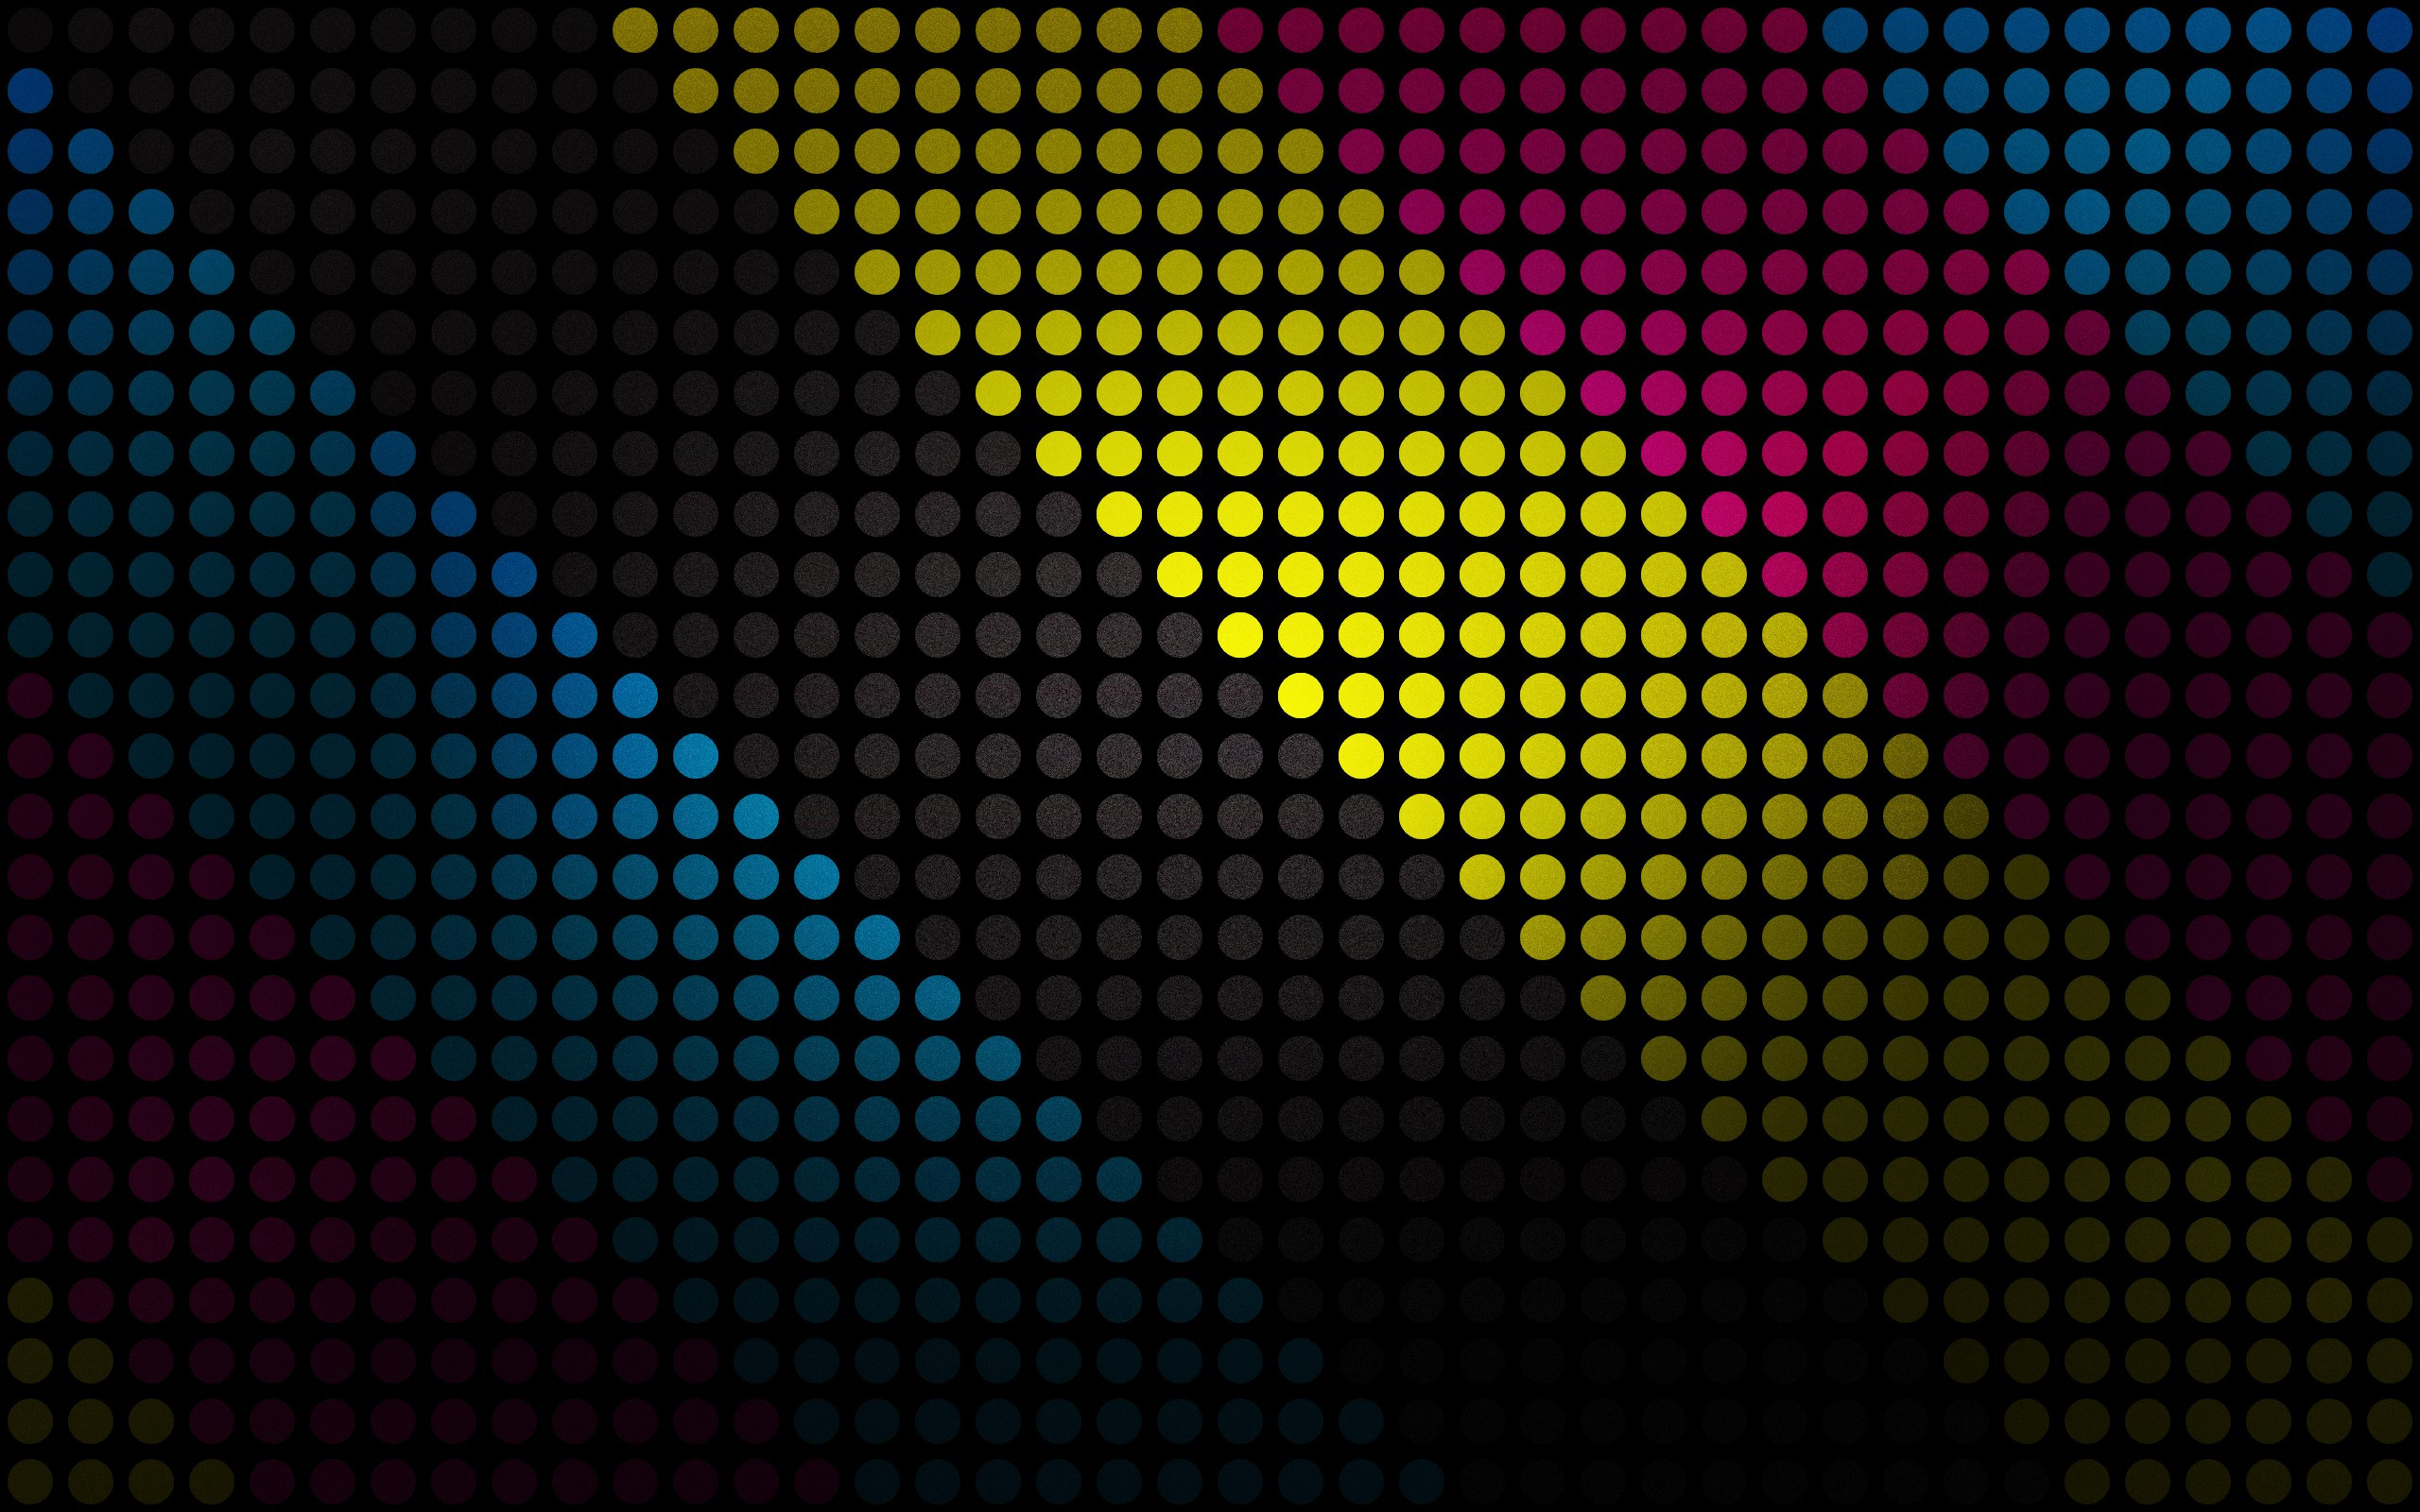 30 wallpapers perfect for AMOLED screens | AndroidGuys